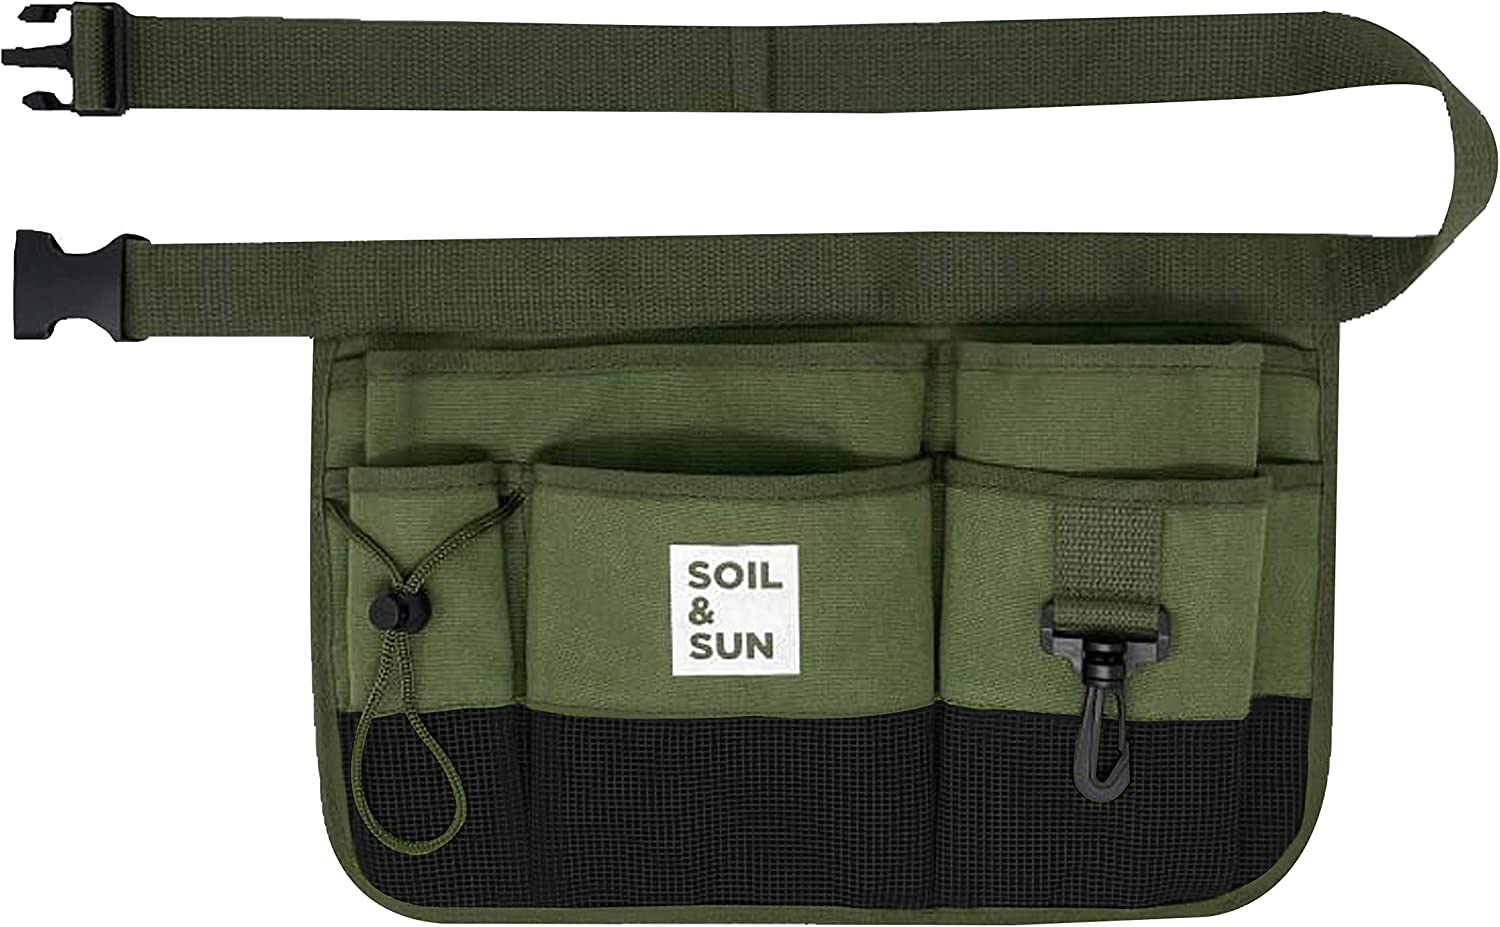 Soil and Sun Canvas Gardening Tool Belt – Comfortable and User-Friendly – Durable and Multifunctional Design (Green)